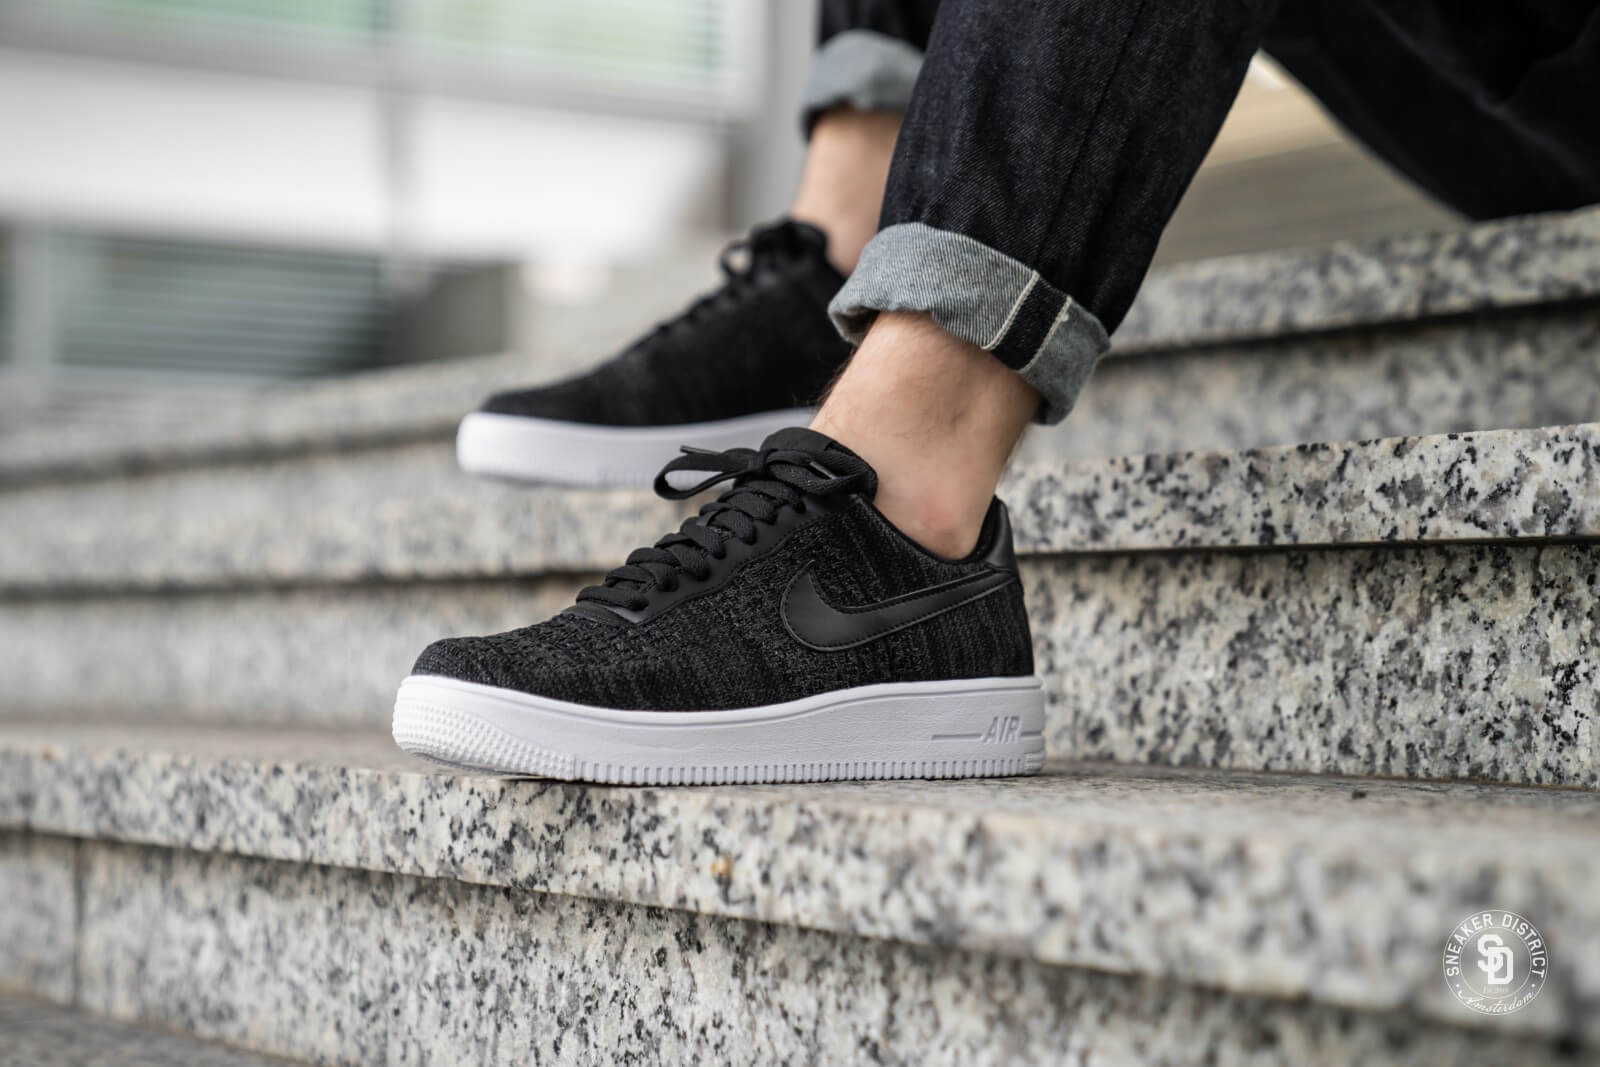 Nike Air Force 1 Flyknit 2.0 Black/White-Anthracite - CI0051-001